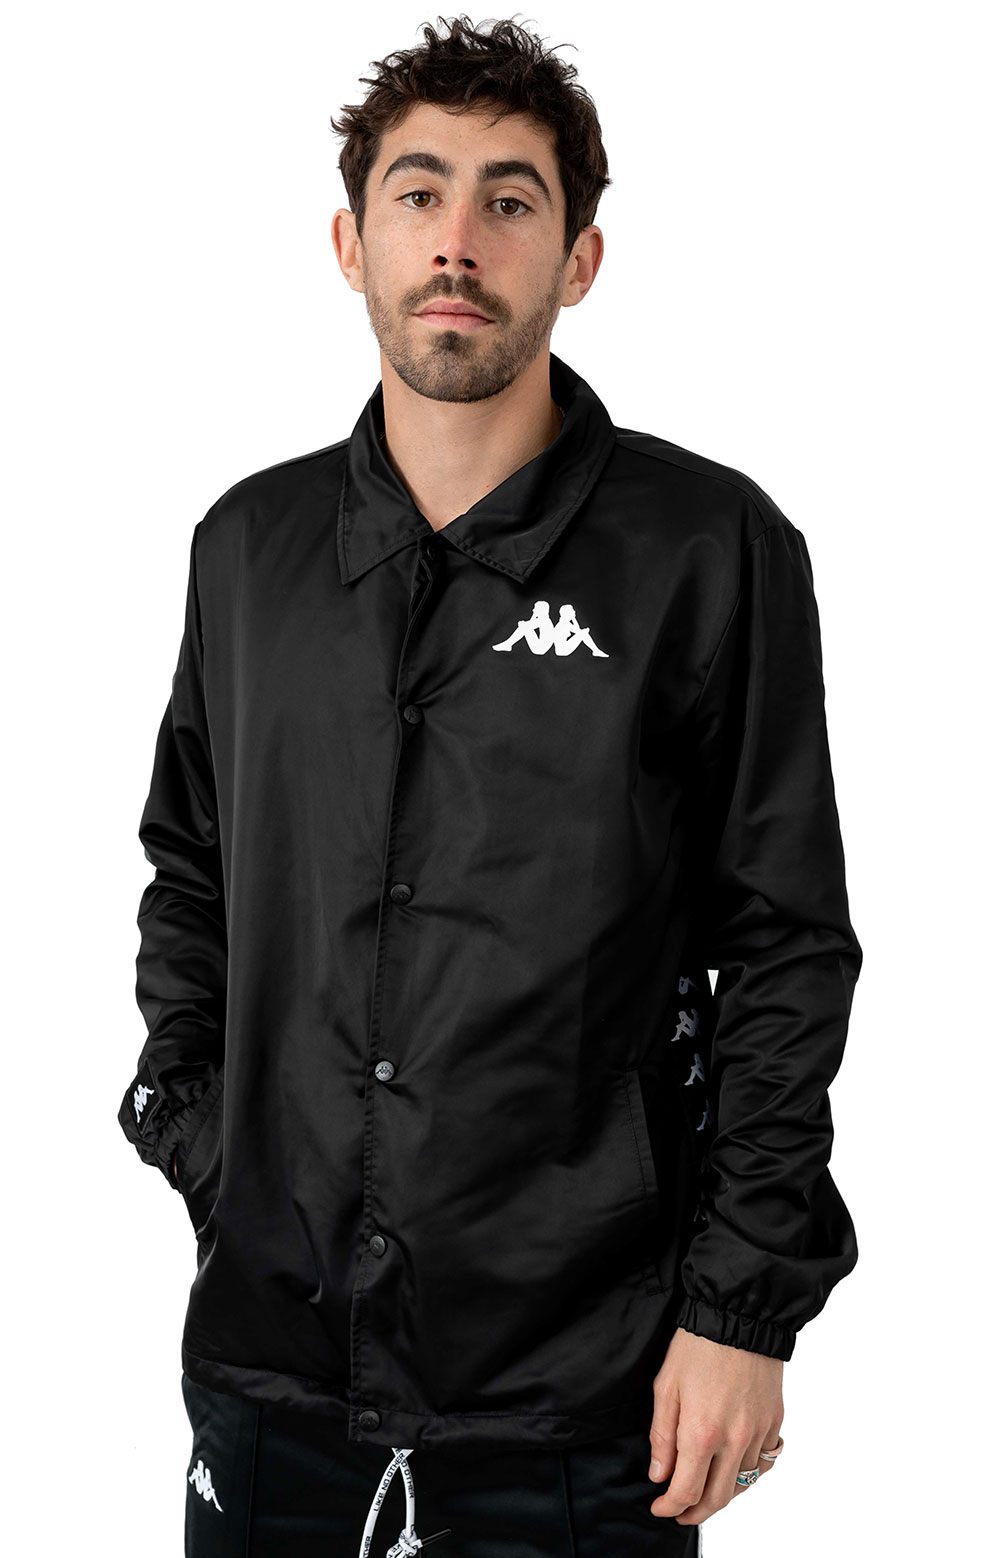 Authentic Batin Jacket - Black/White